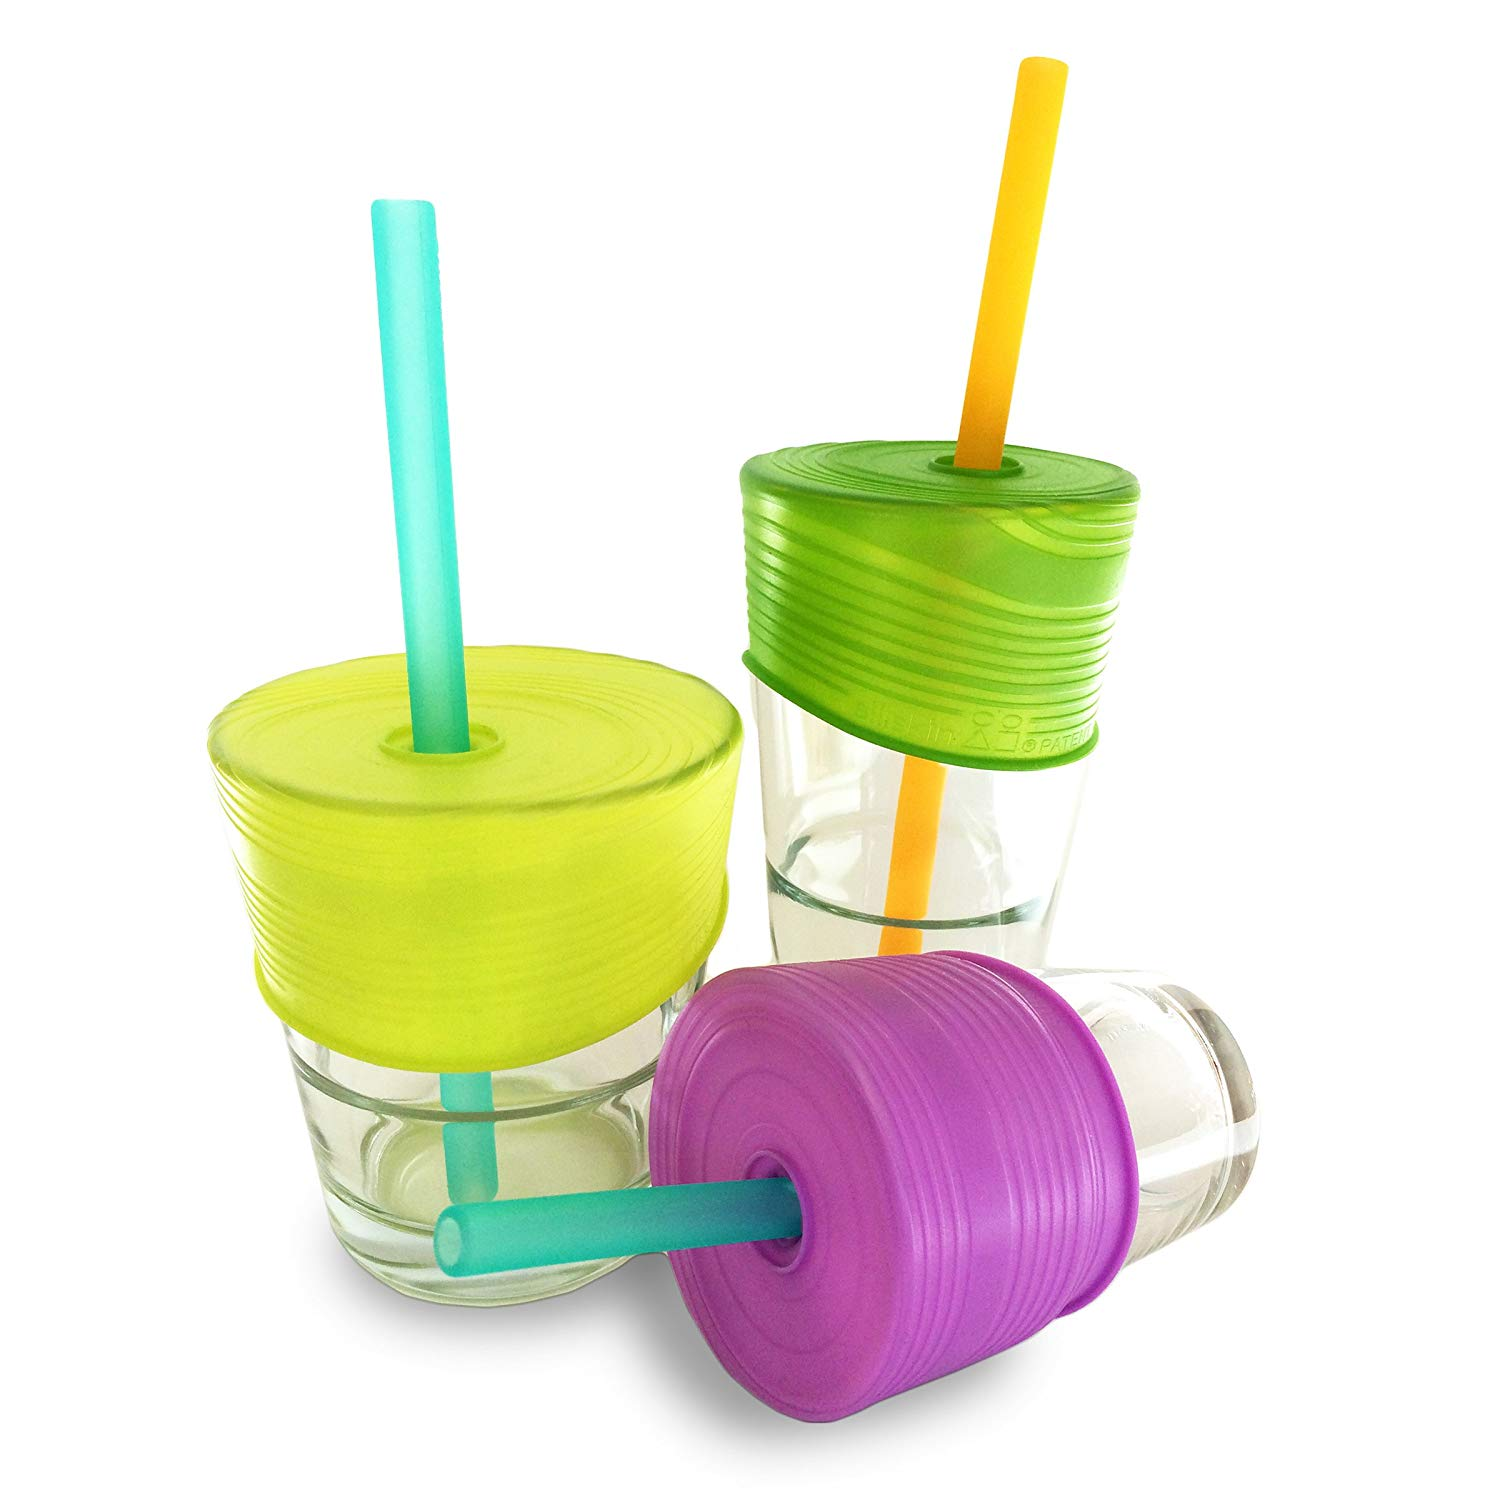 Silikids Cup Lids - Refuse single-use plastic cups at restaurants by bringing these easy-to-pack cup covers in your bag for the kids.